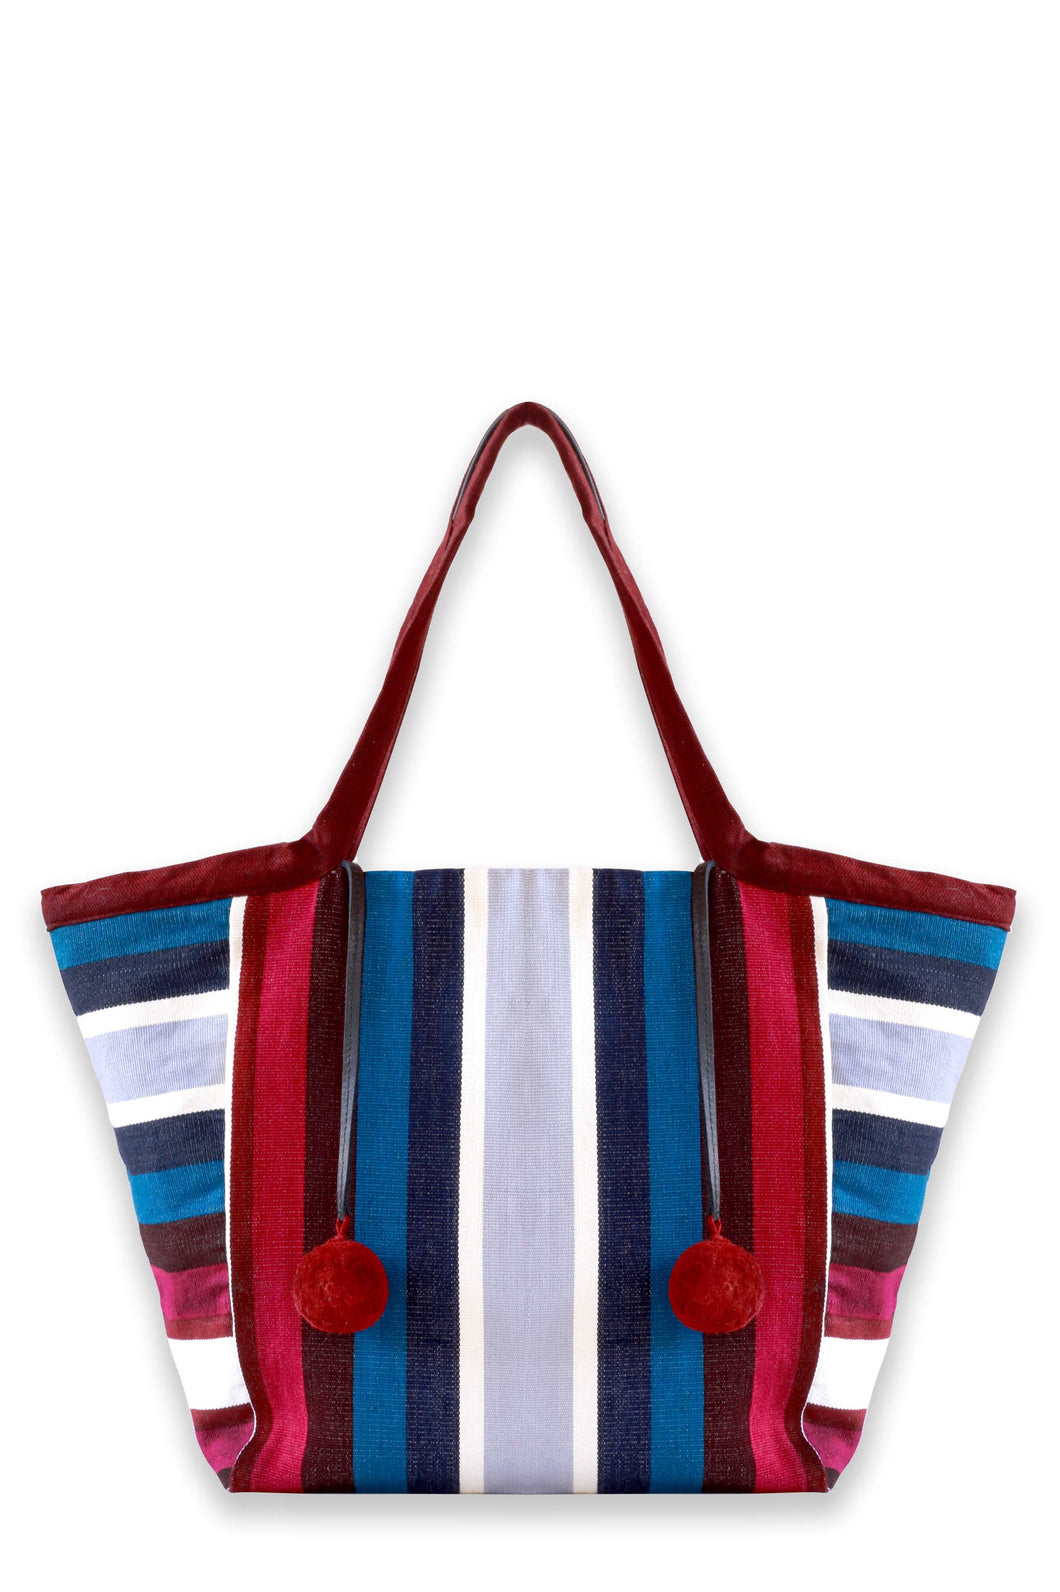 Ruby Rosa Tote